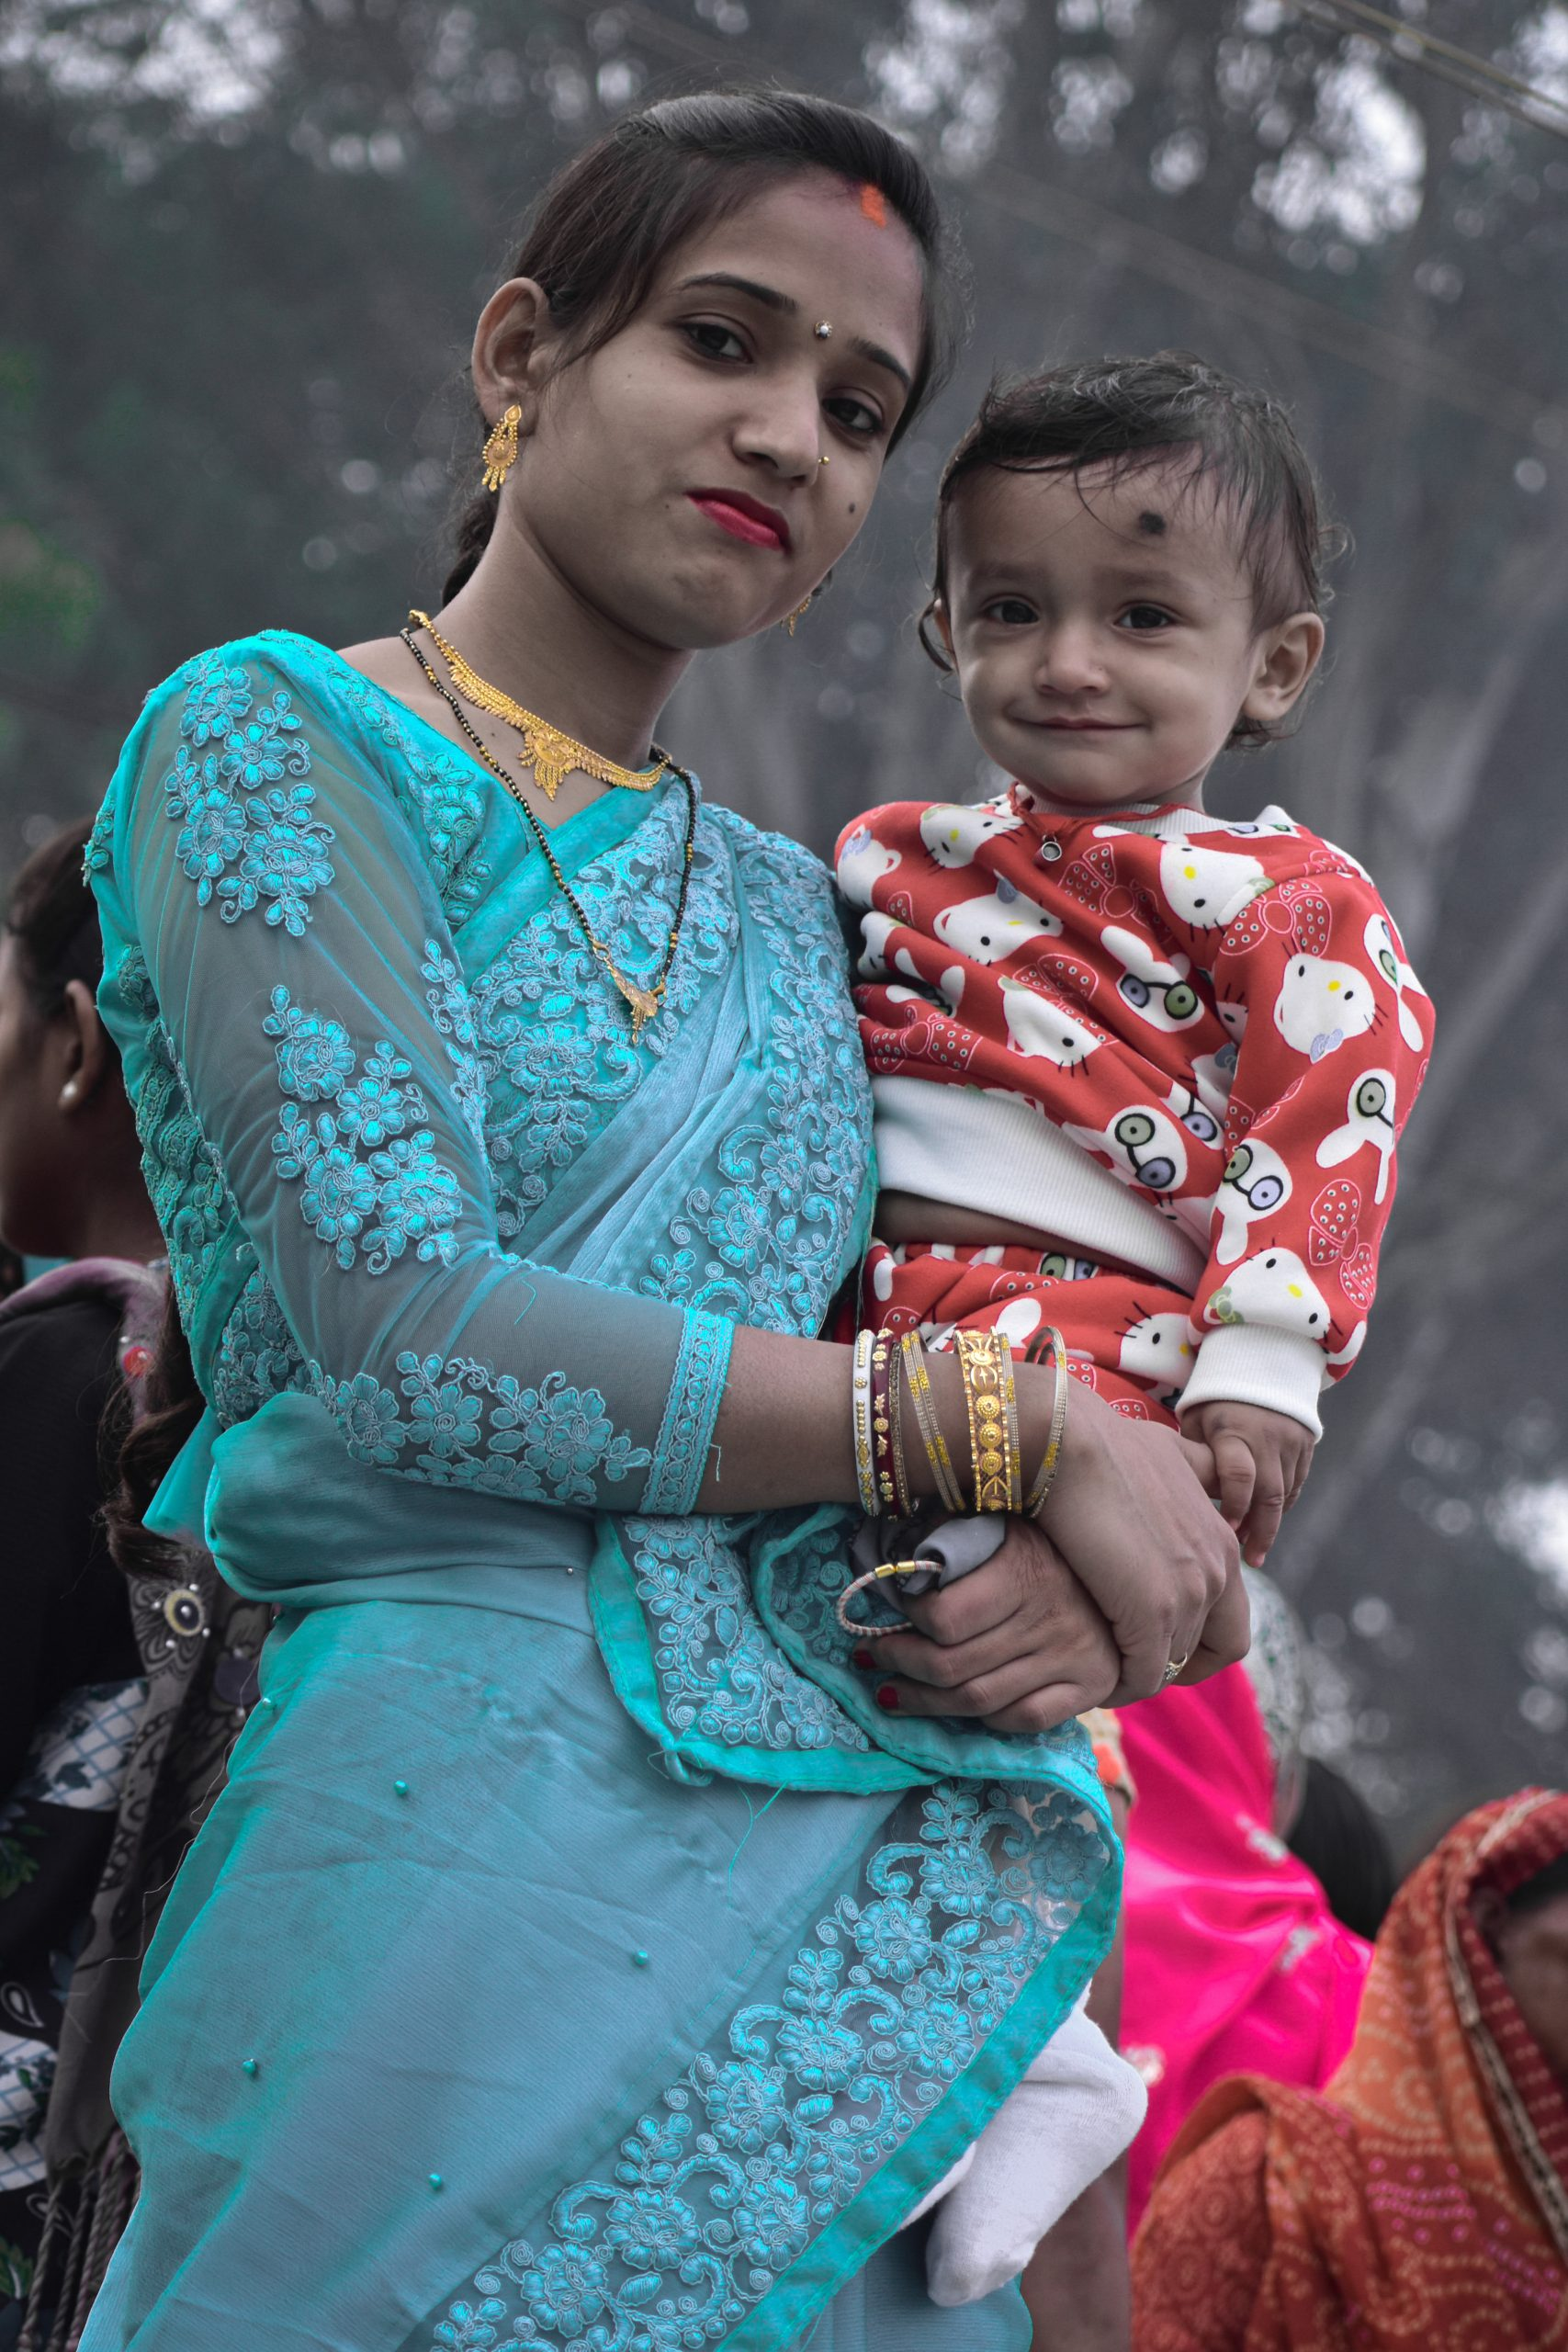 A woman with her baby